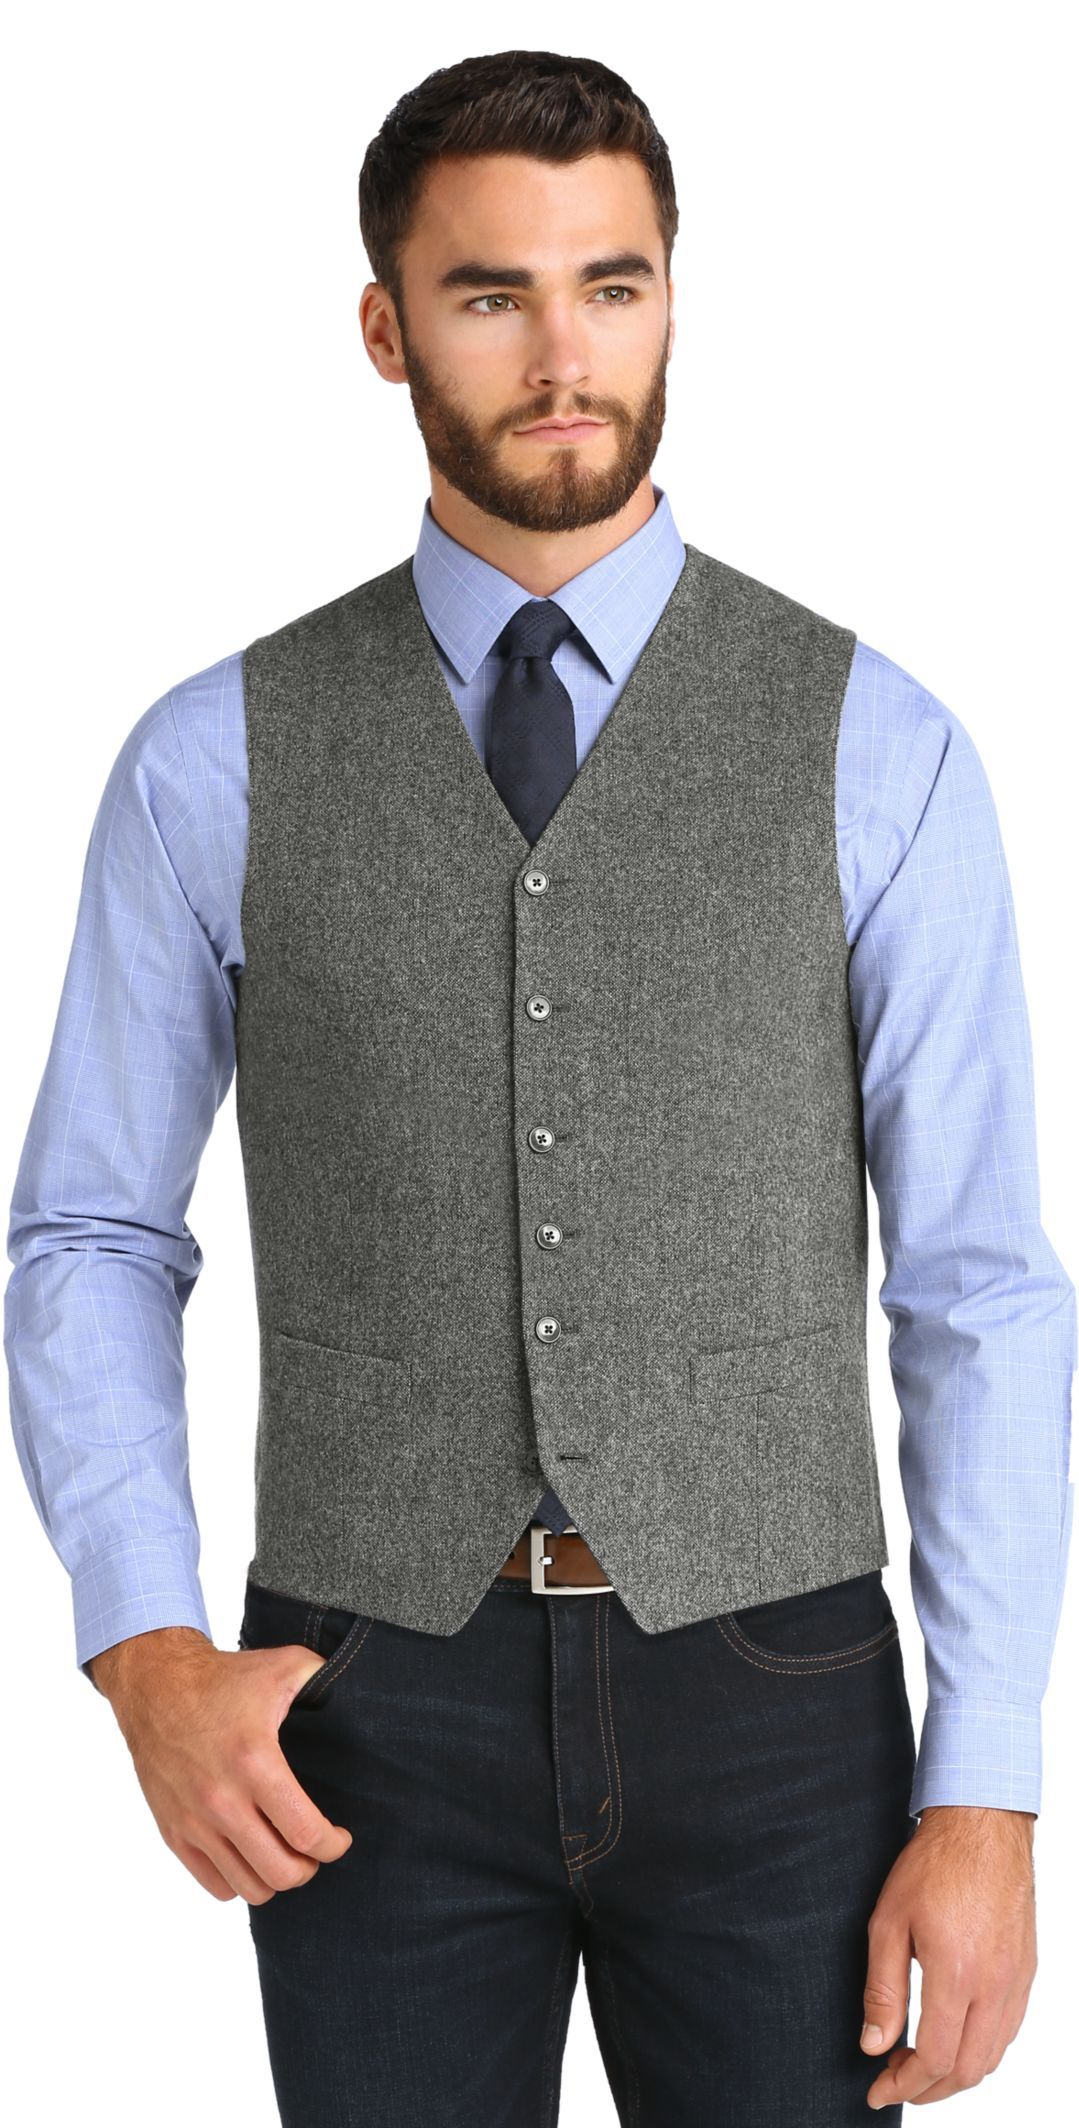 abab9662 1905 Collection Tailored Fit Vest - Big & Tall CLEARANCE in 2019 ...